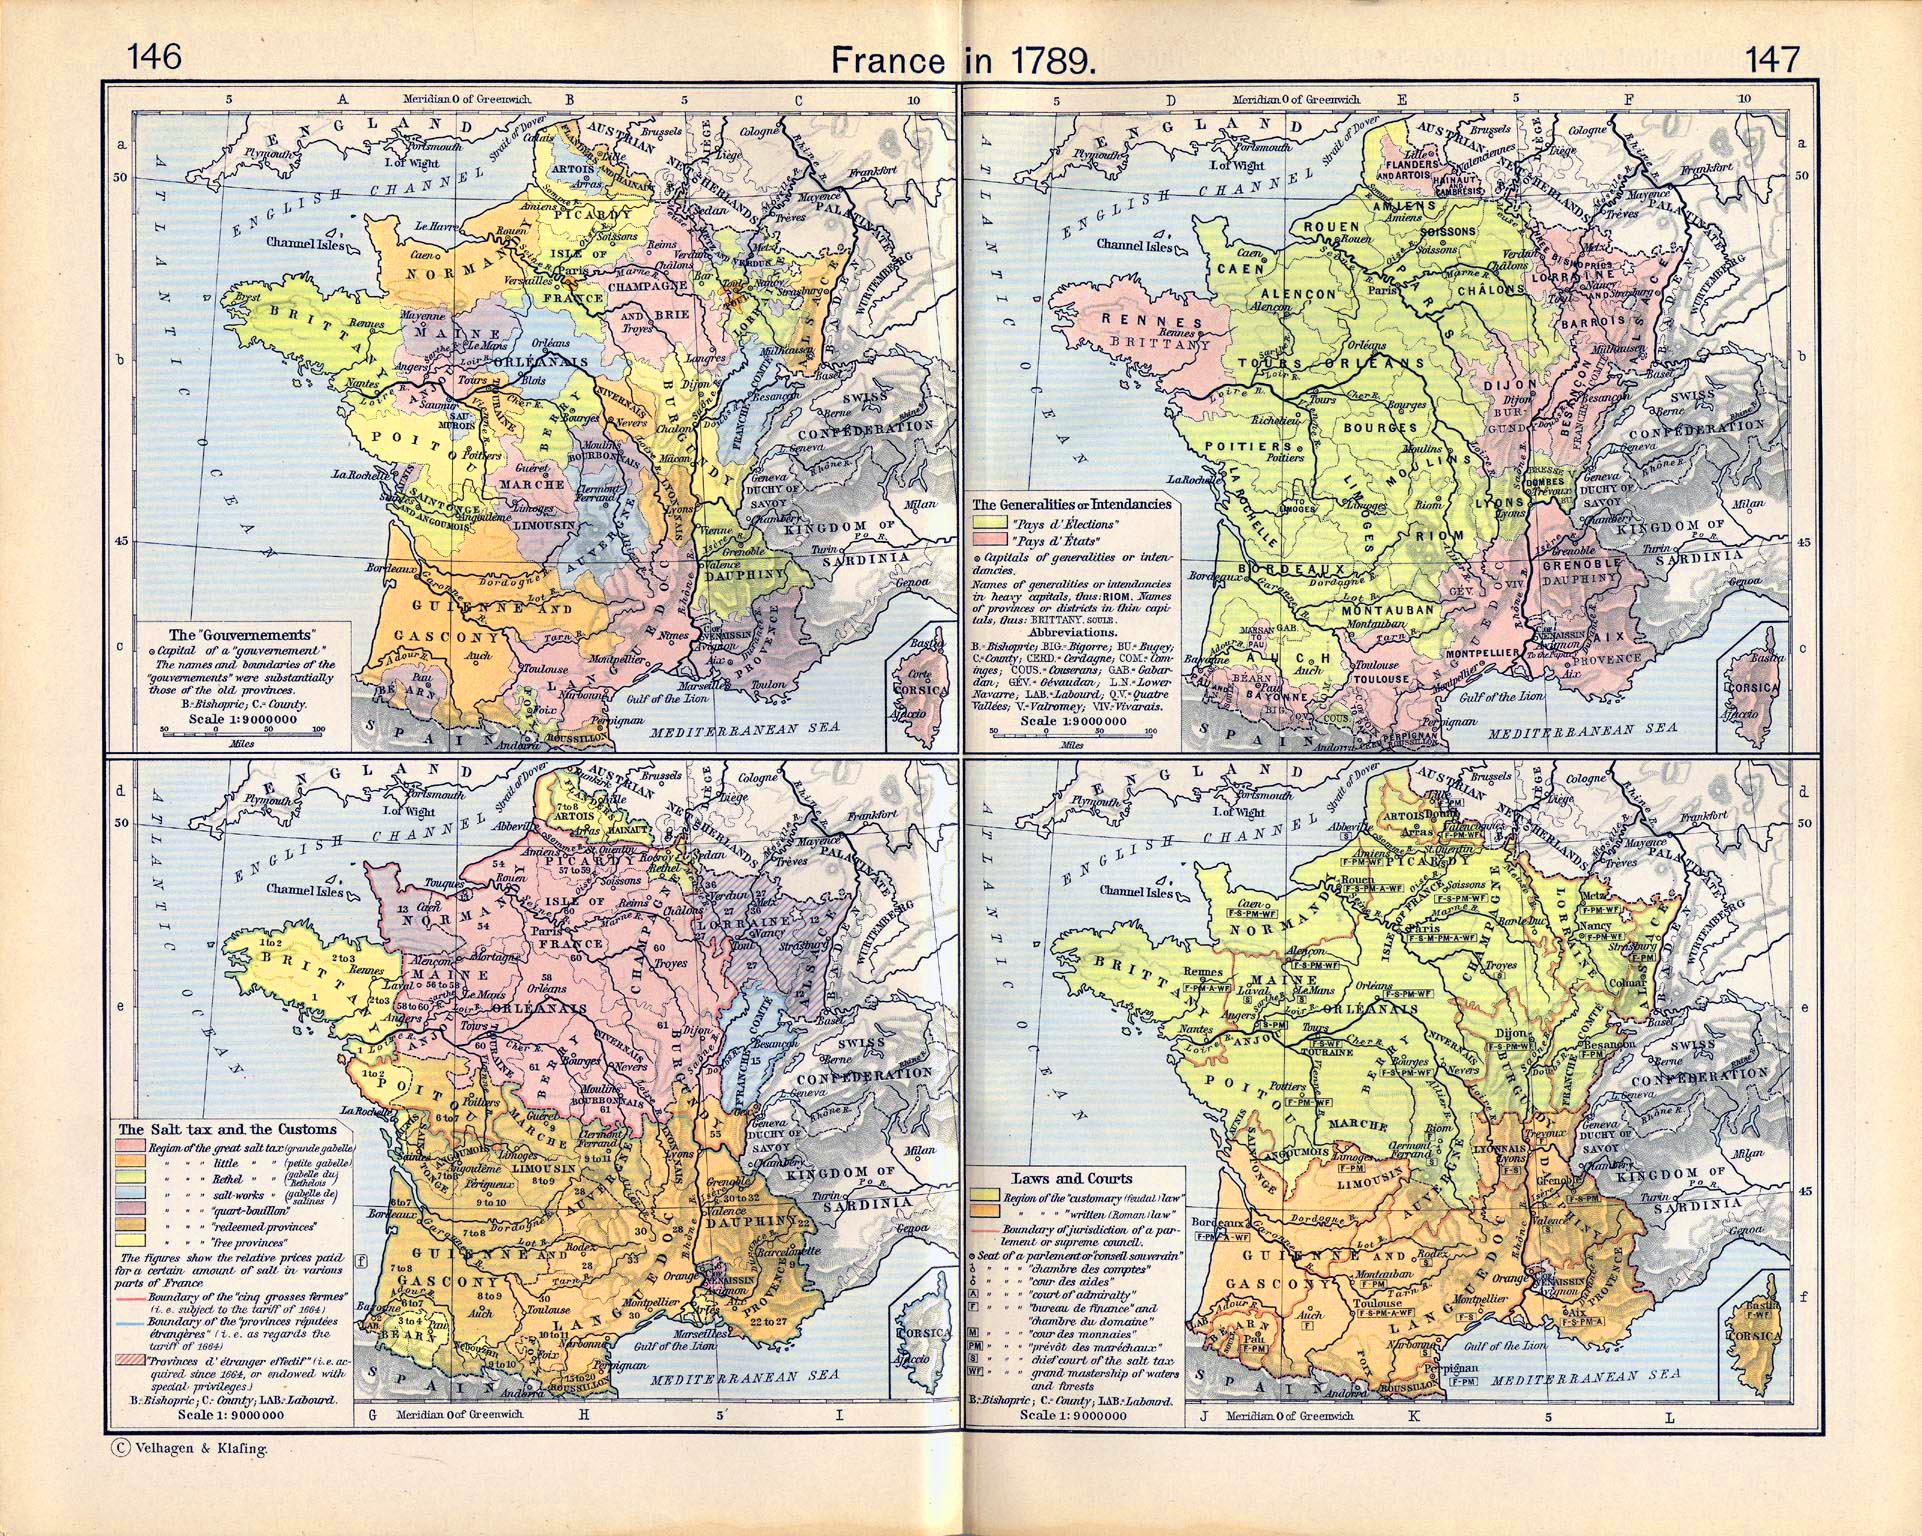 "Map of France in 1789. The ""Gouvernements"", The Generalities or Intendancies, The Salt Tax, and Laws and Courts."